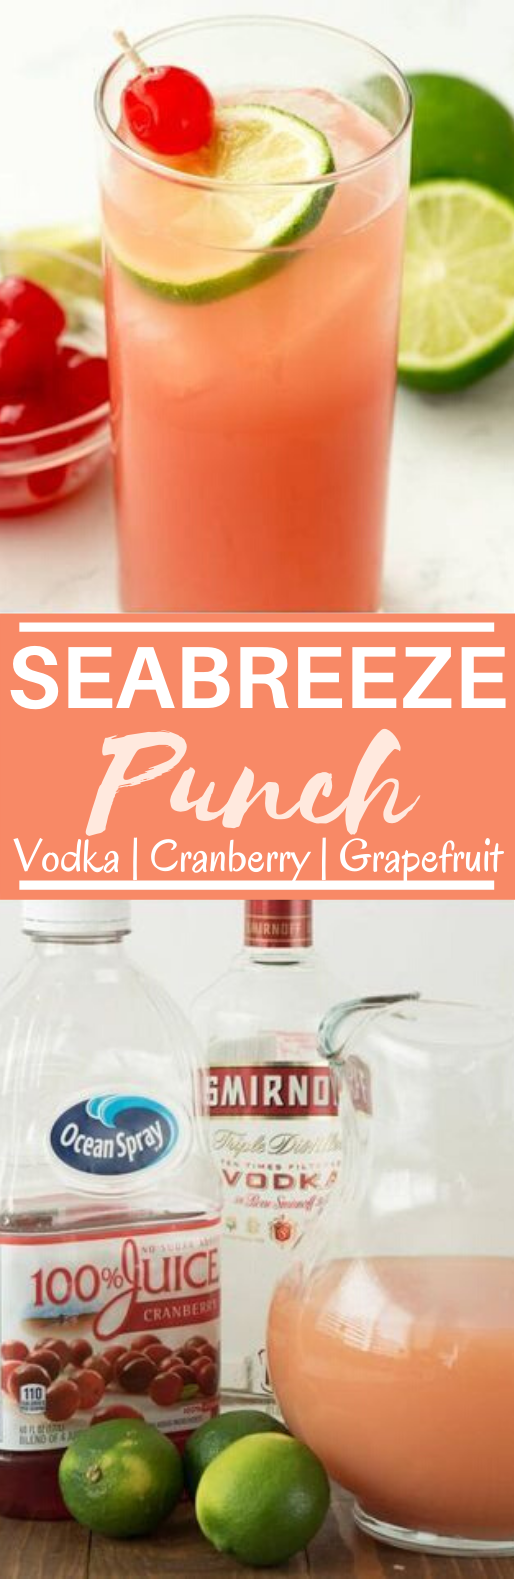 Sea Breeze Cocktail Punch #drinks #alcohol #cocktails #punch #summer